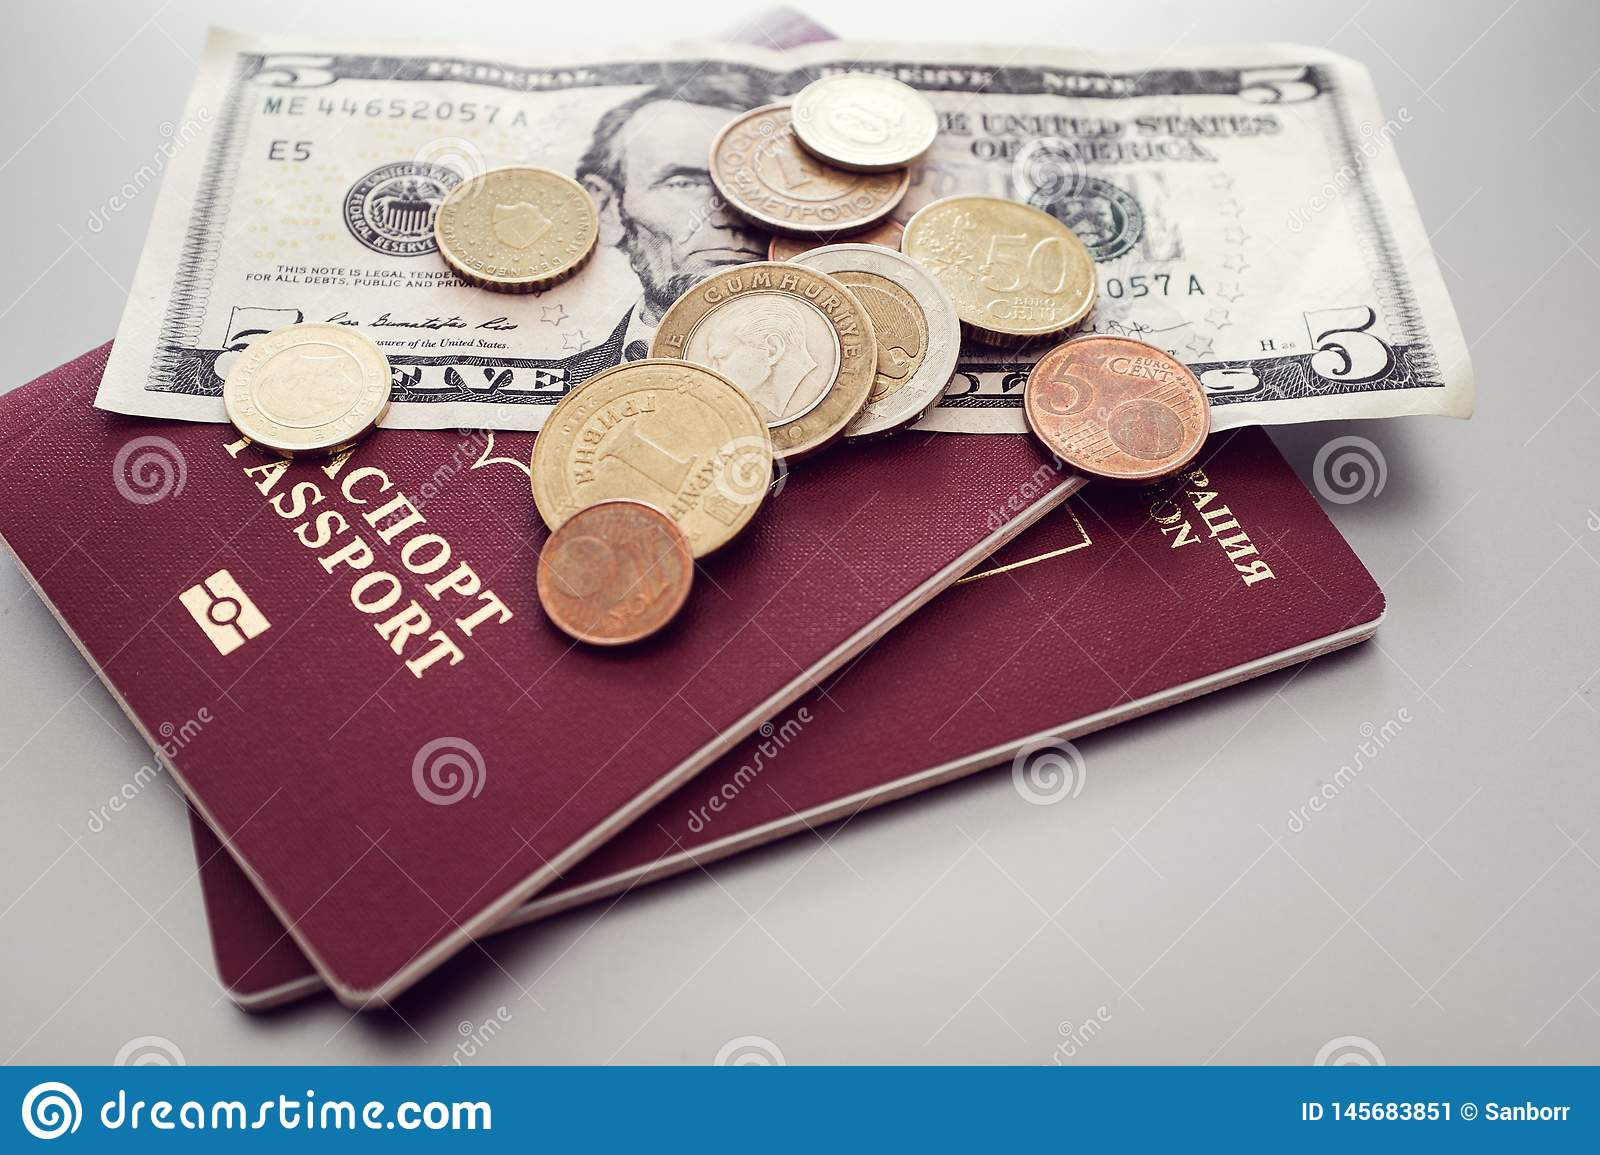 Passport with banknotes and coins on a simple background. business, tourism, travel concept